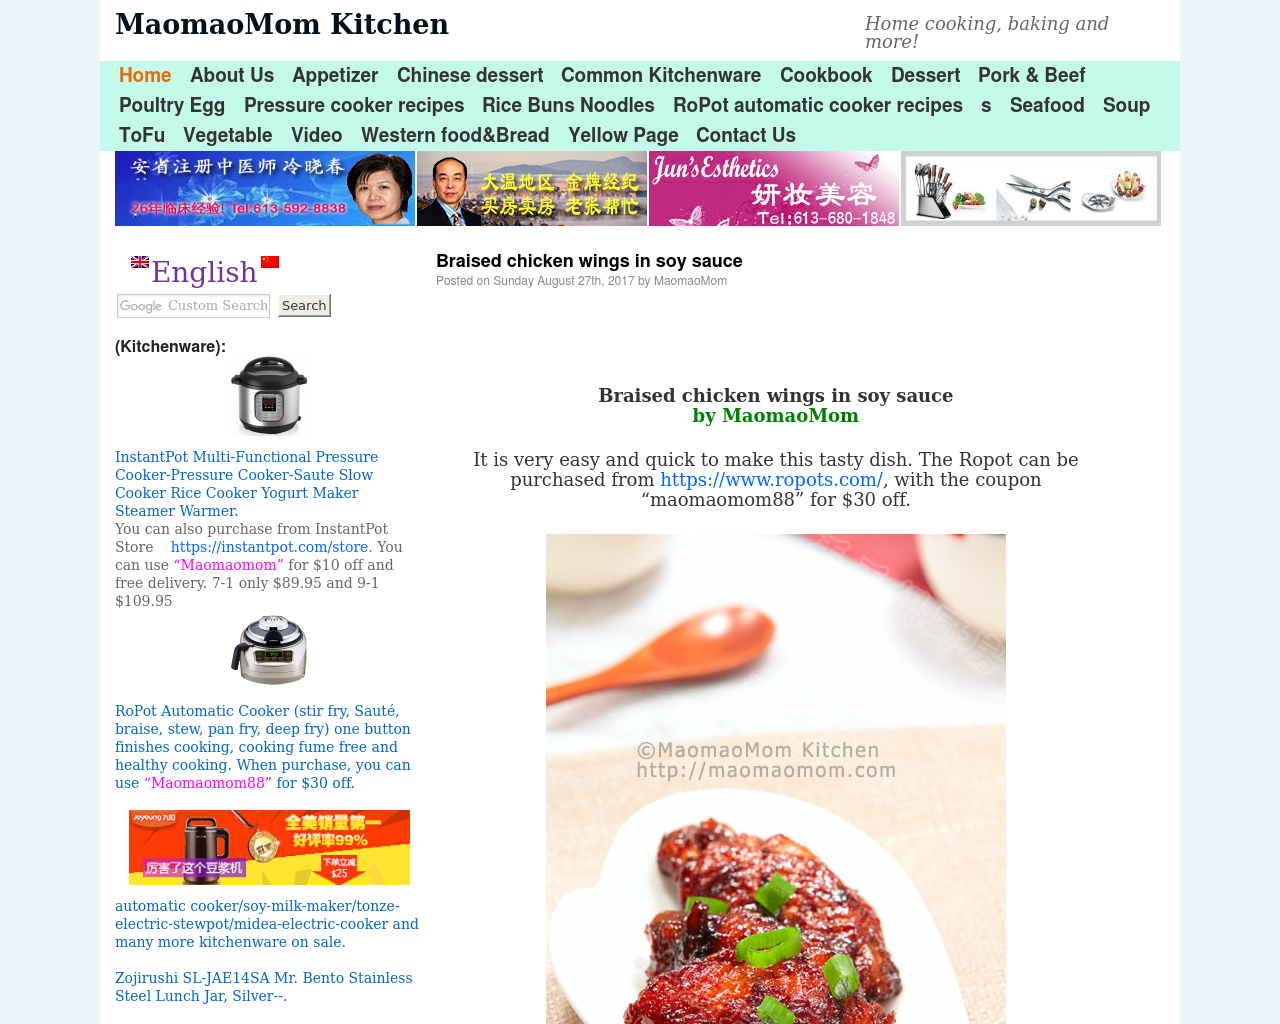 MaomaoMom-Kitchen-Advertising-Reviews-Pricing